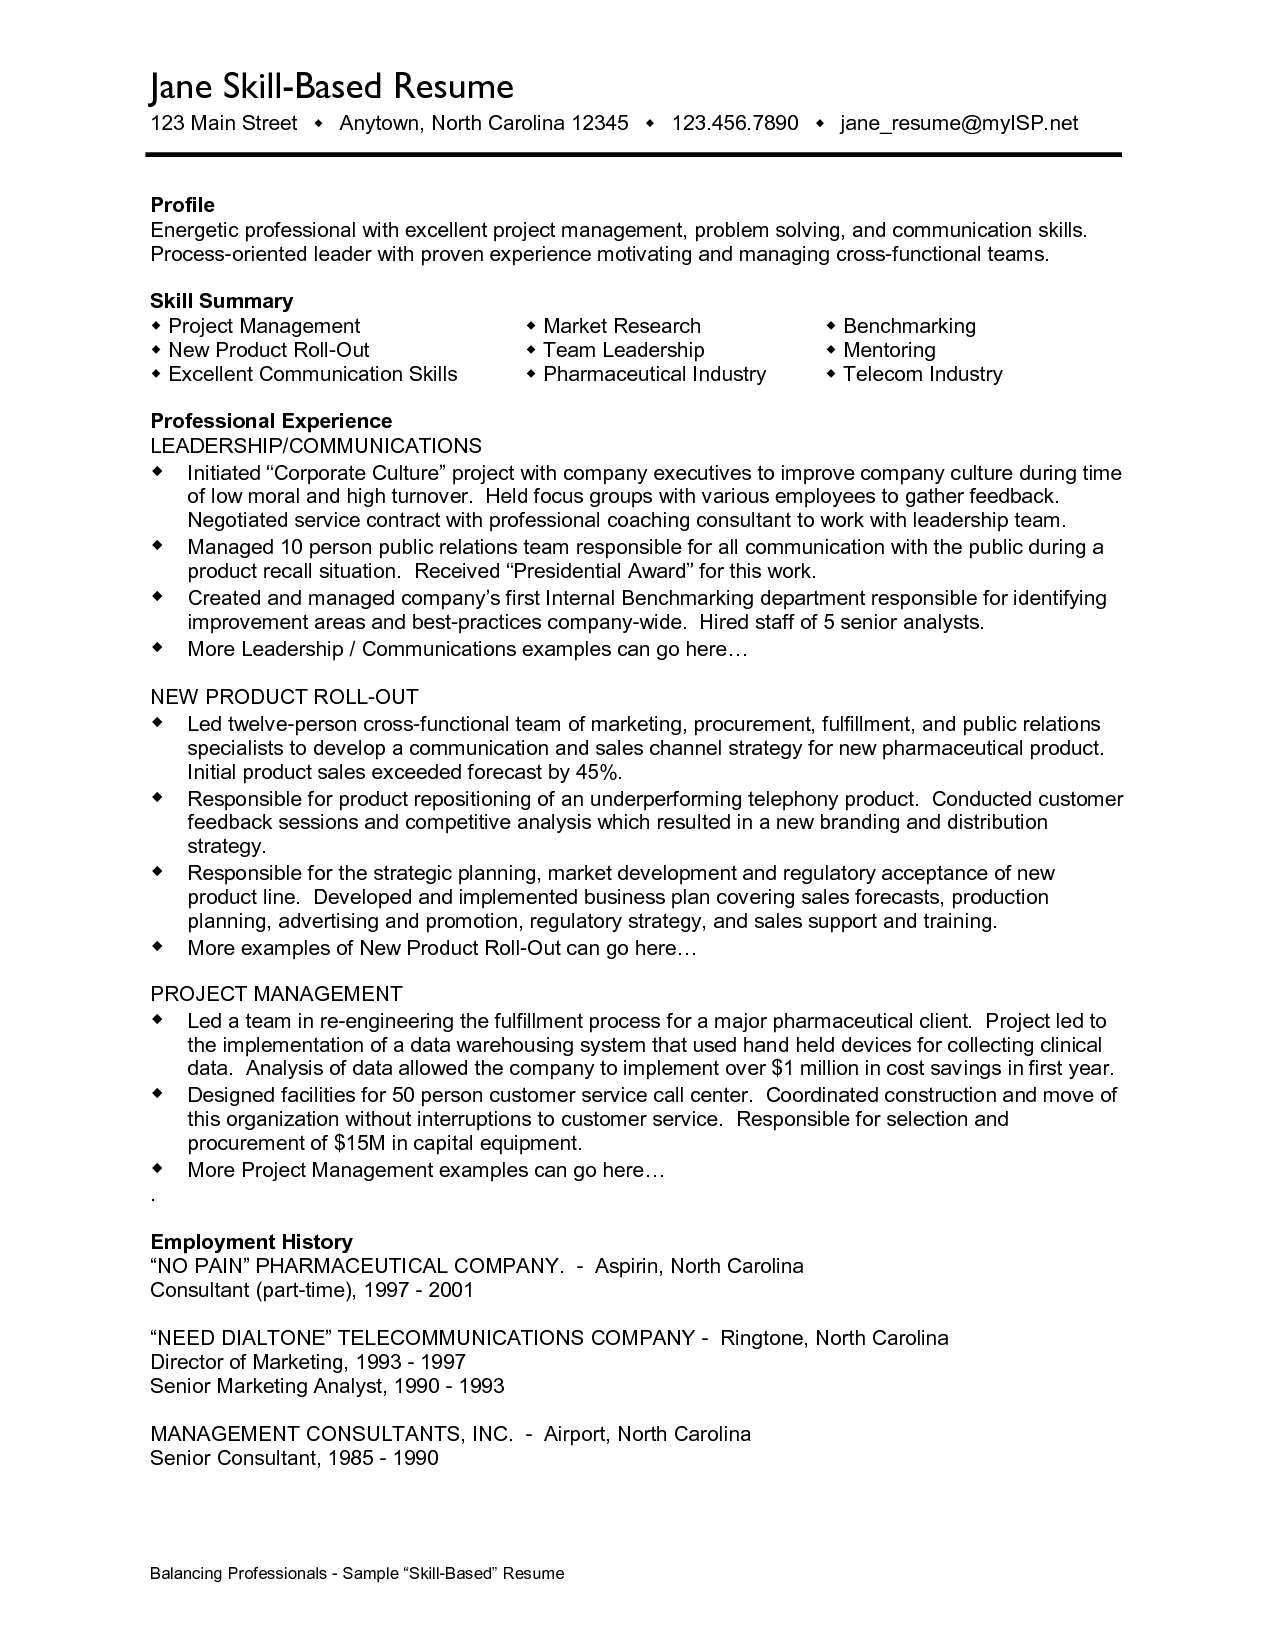 Skills For Job Resume Job Resume Communication Skills  Httpwwwresumecareerjob